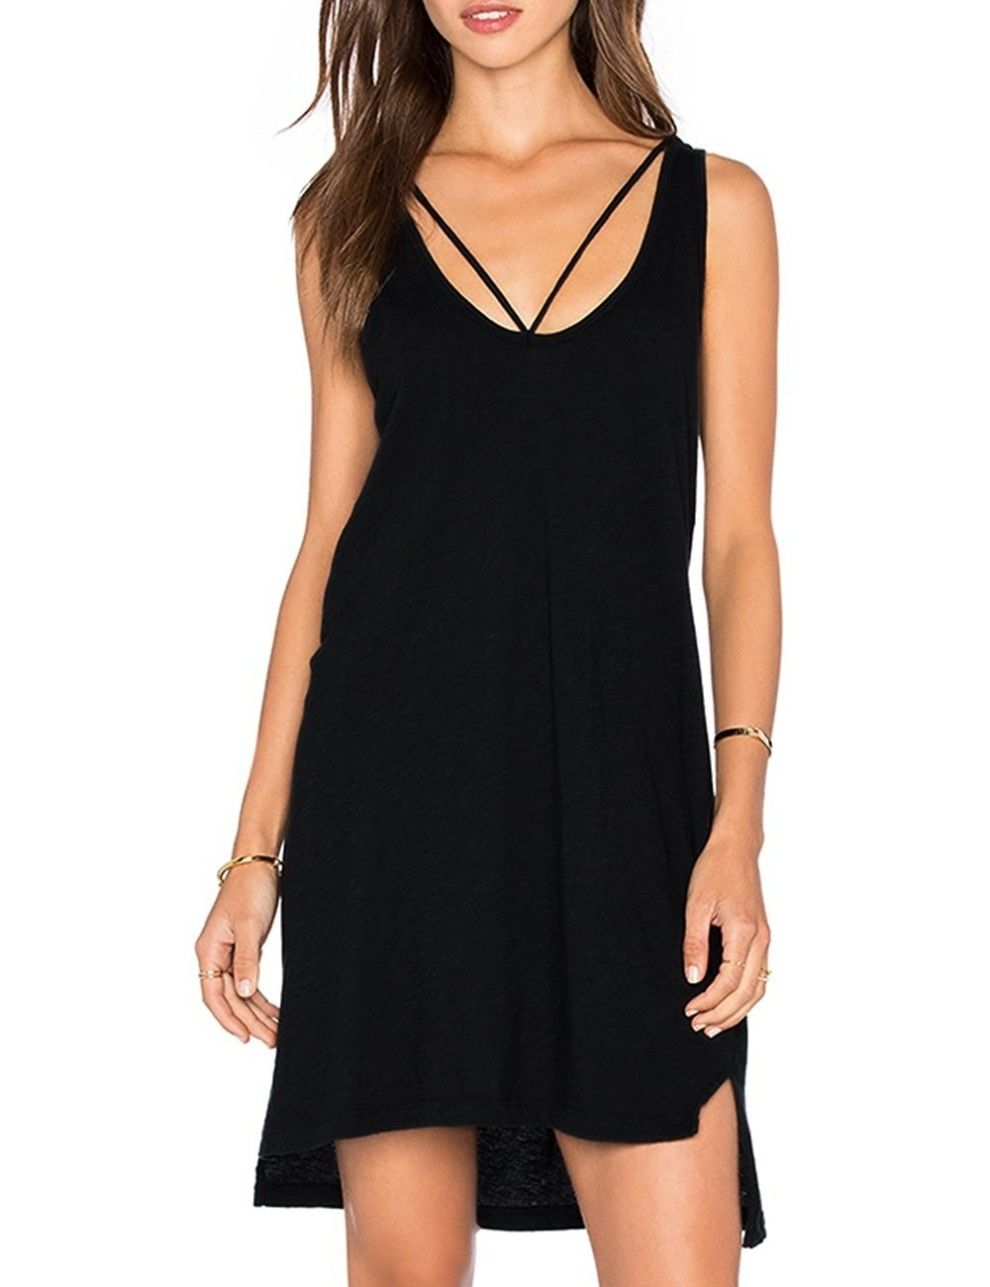 29 Summer Dresses And Jumpsuits For People Who Refuse To Wear Anything But Black Sleeveless Tshirt Stylish Short Dresses Summer Tops Women Casual [ 1287 x 990 Pixel ]